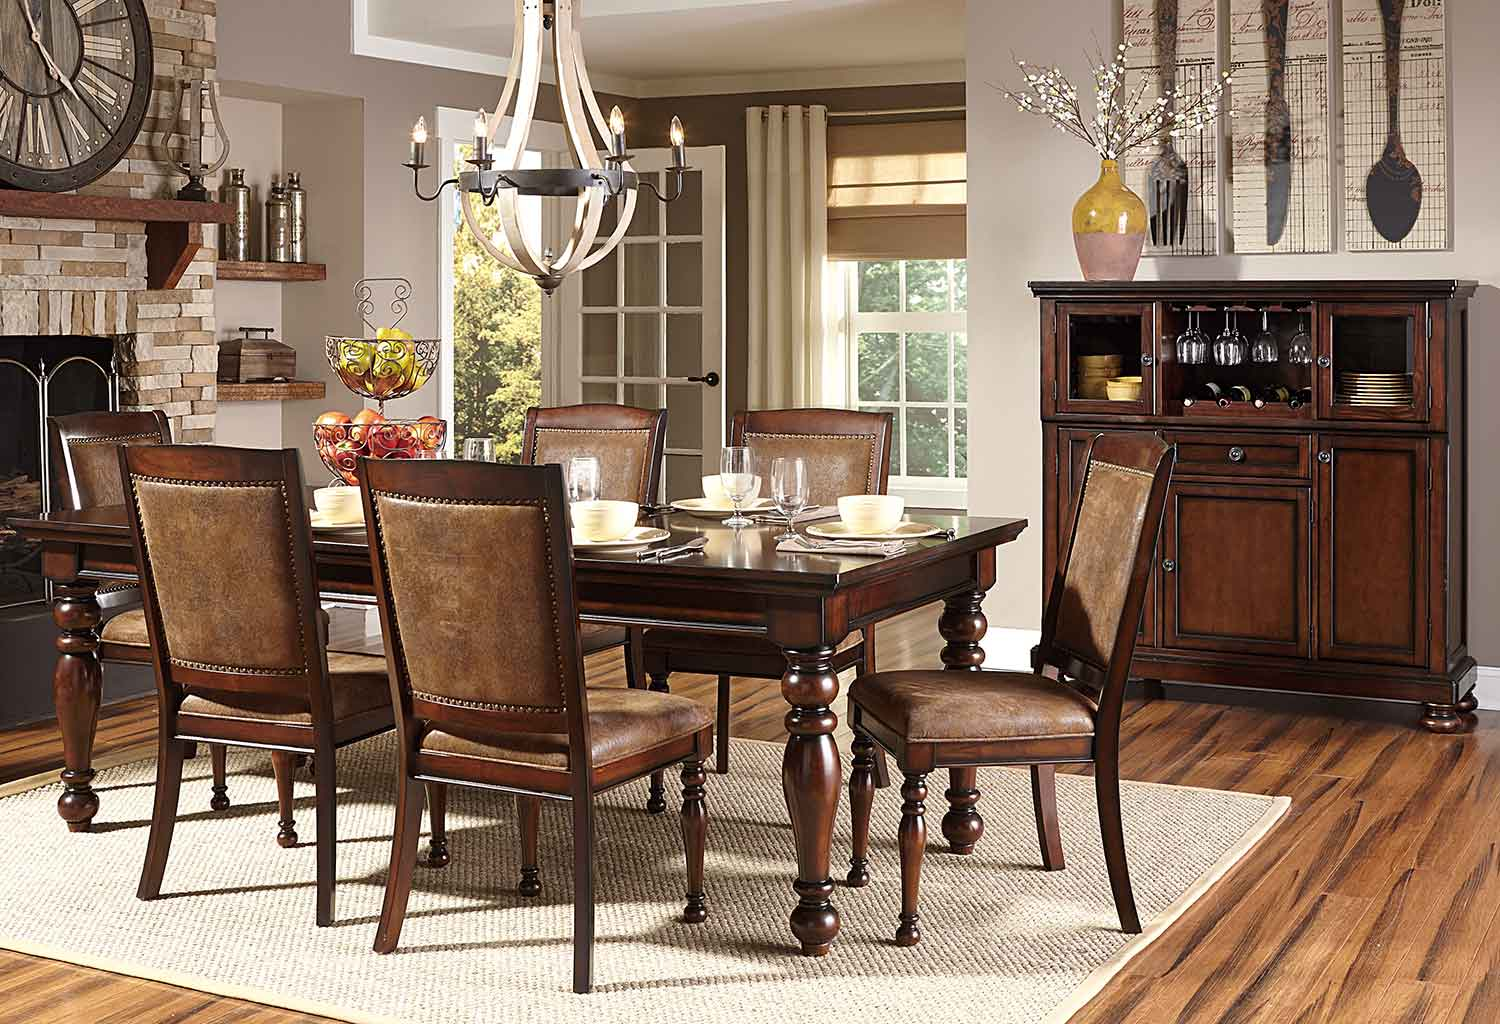 Homelegance Cumberland Dining Set - Rich Medium Brown